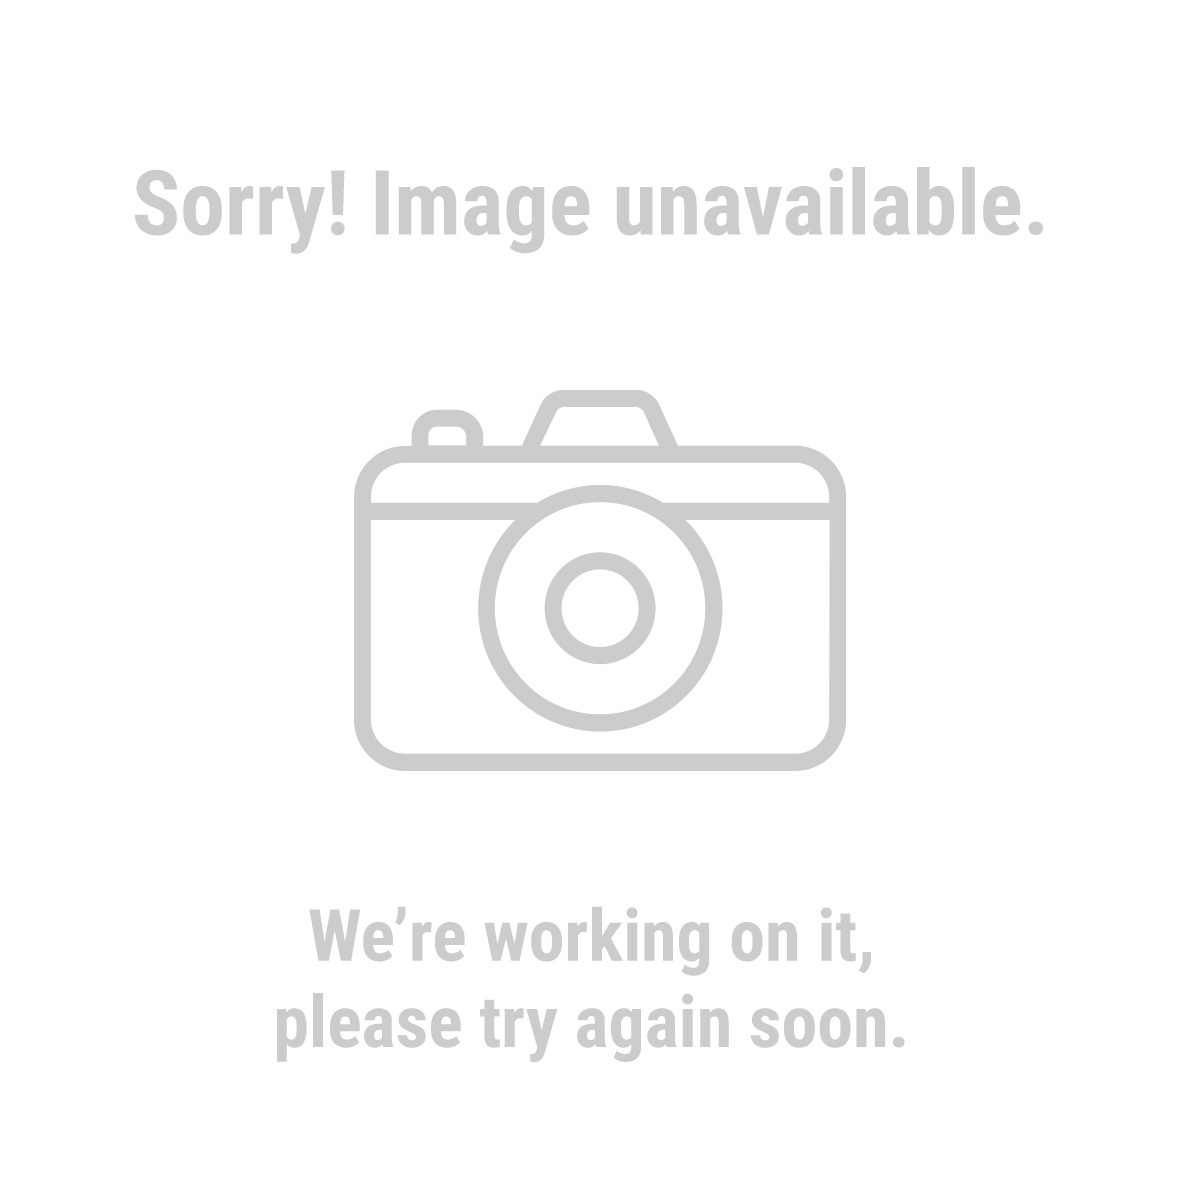 Western Safety 68510 Pack of 50 Black Nitrile Gloves, Size Medium